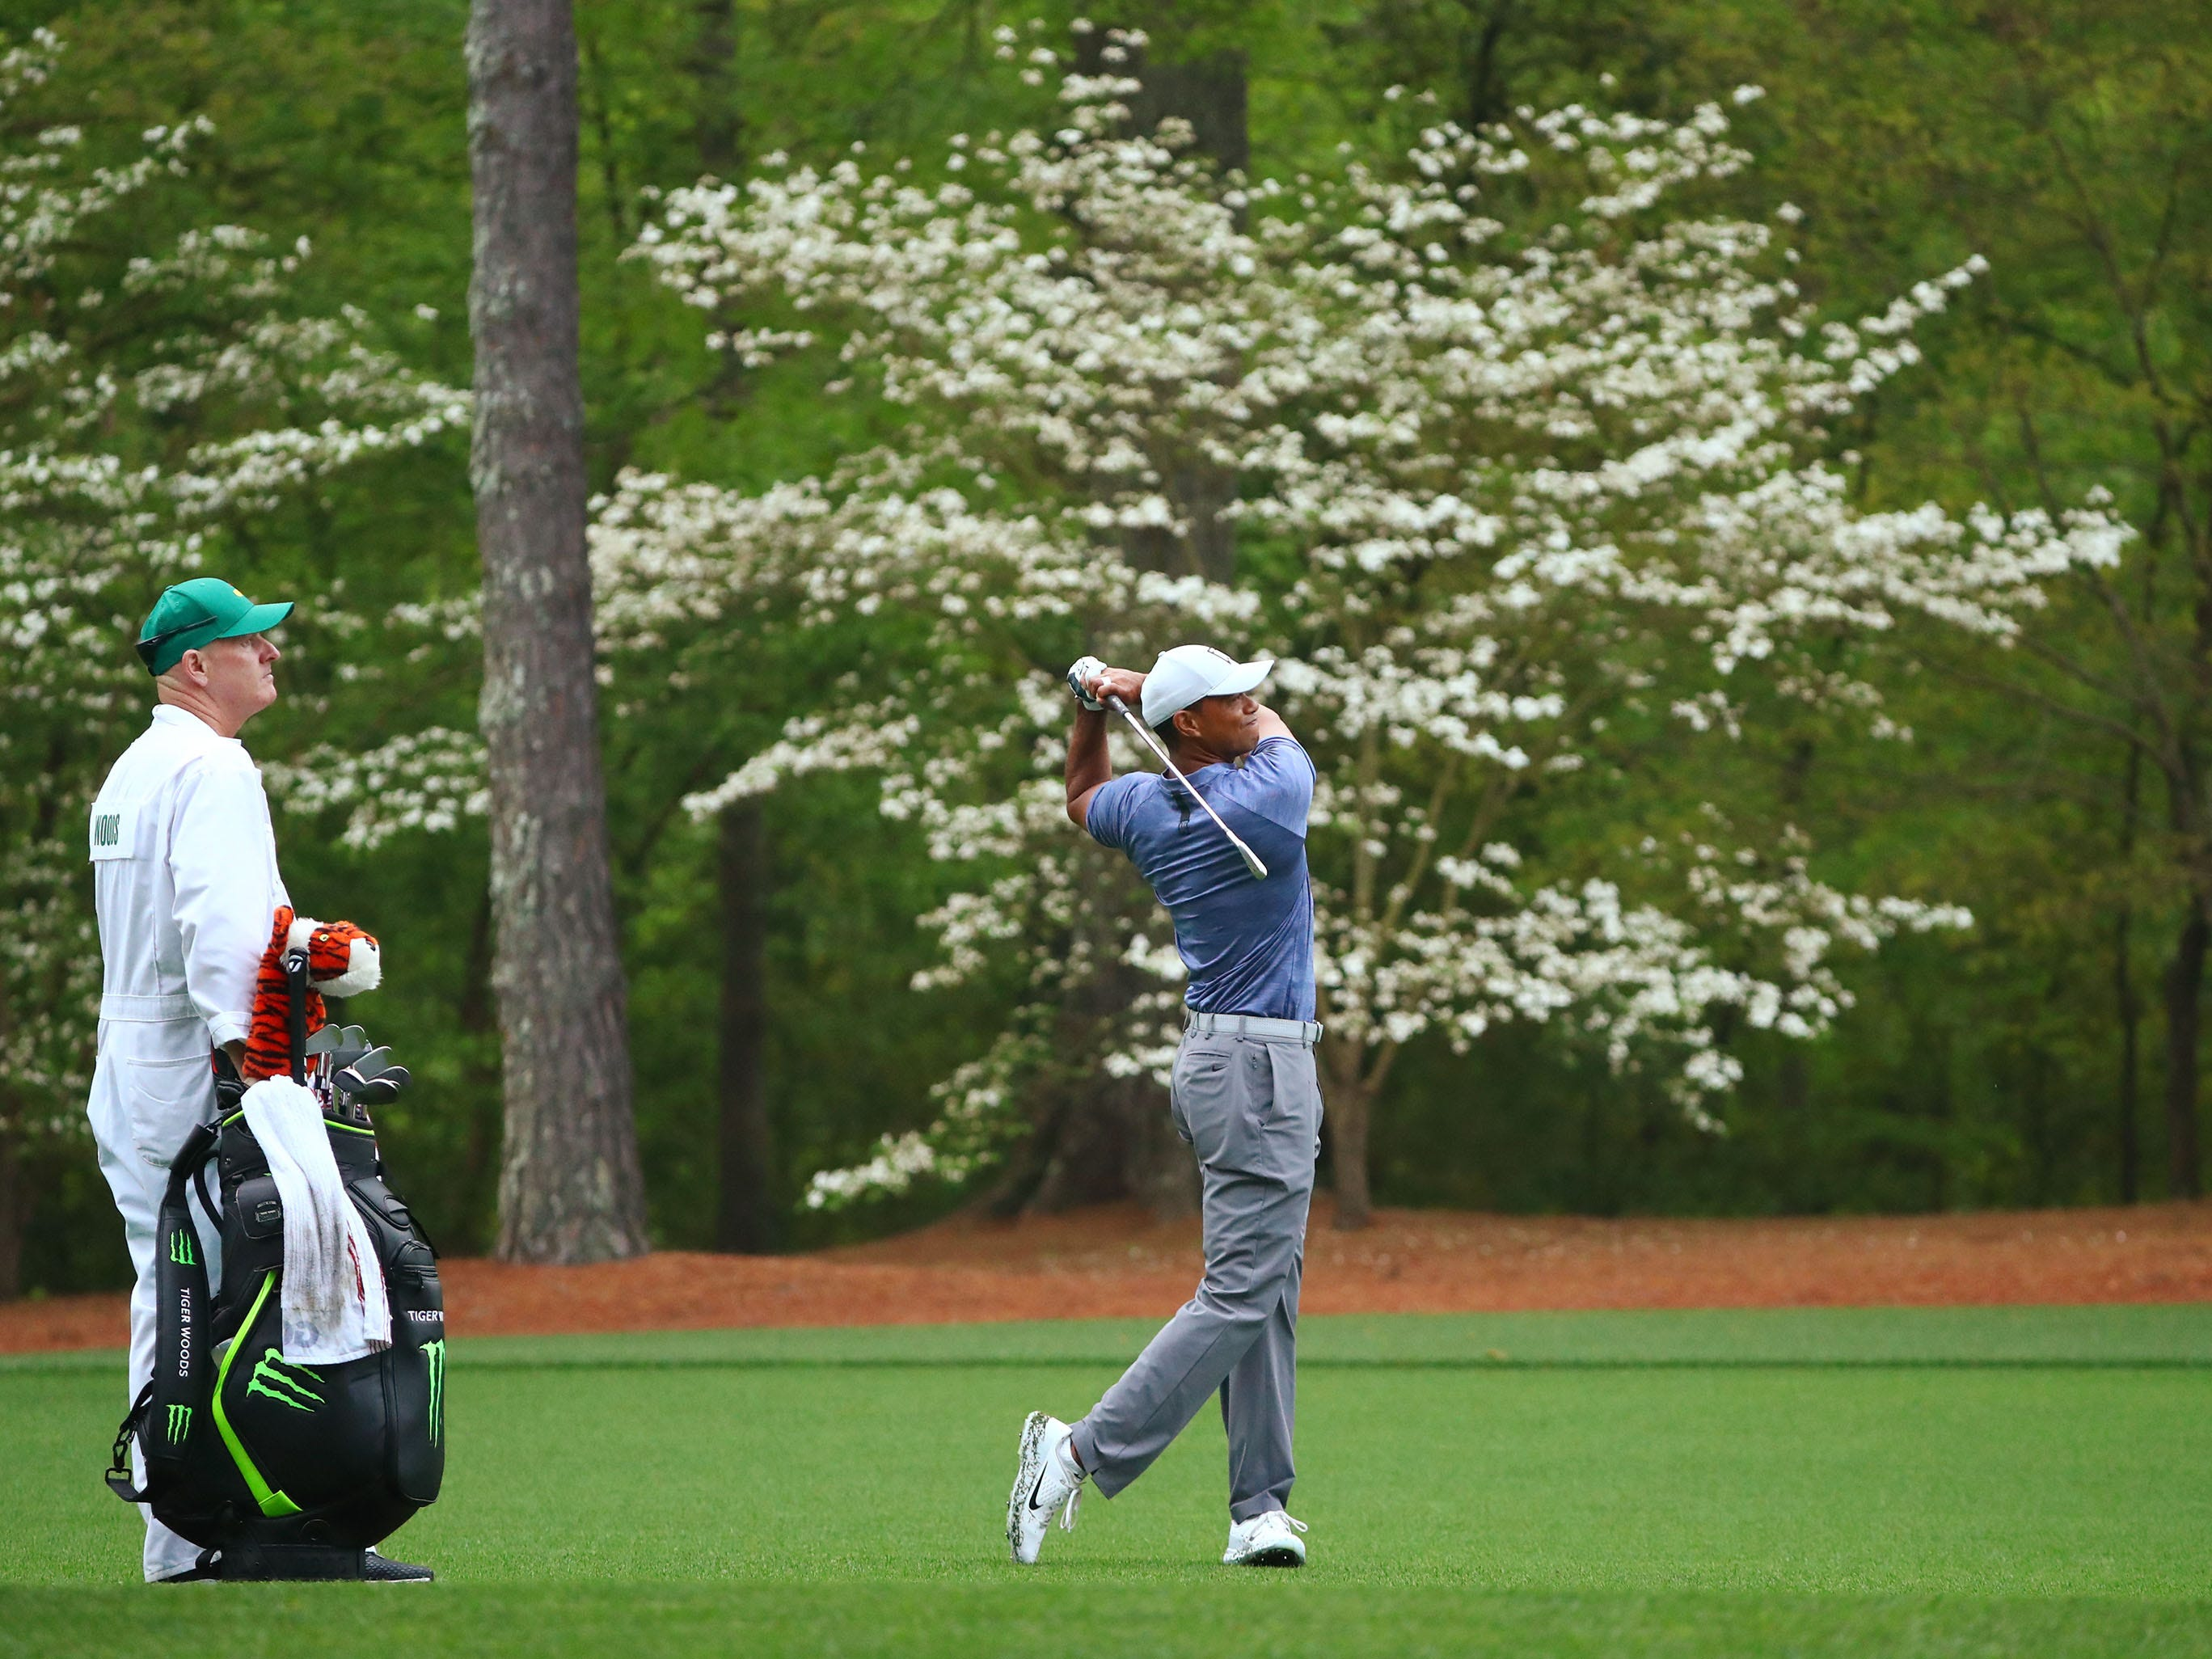 Tiger Woods hits his second shot on the 11th hole during a practice round for the Masters golf tournament.